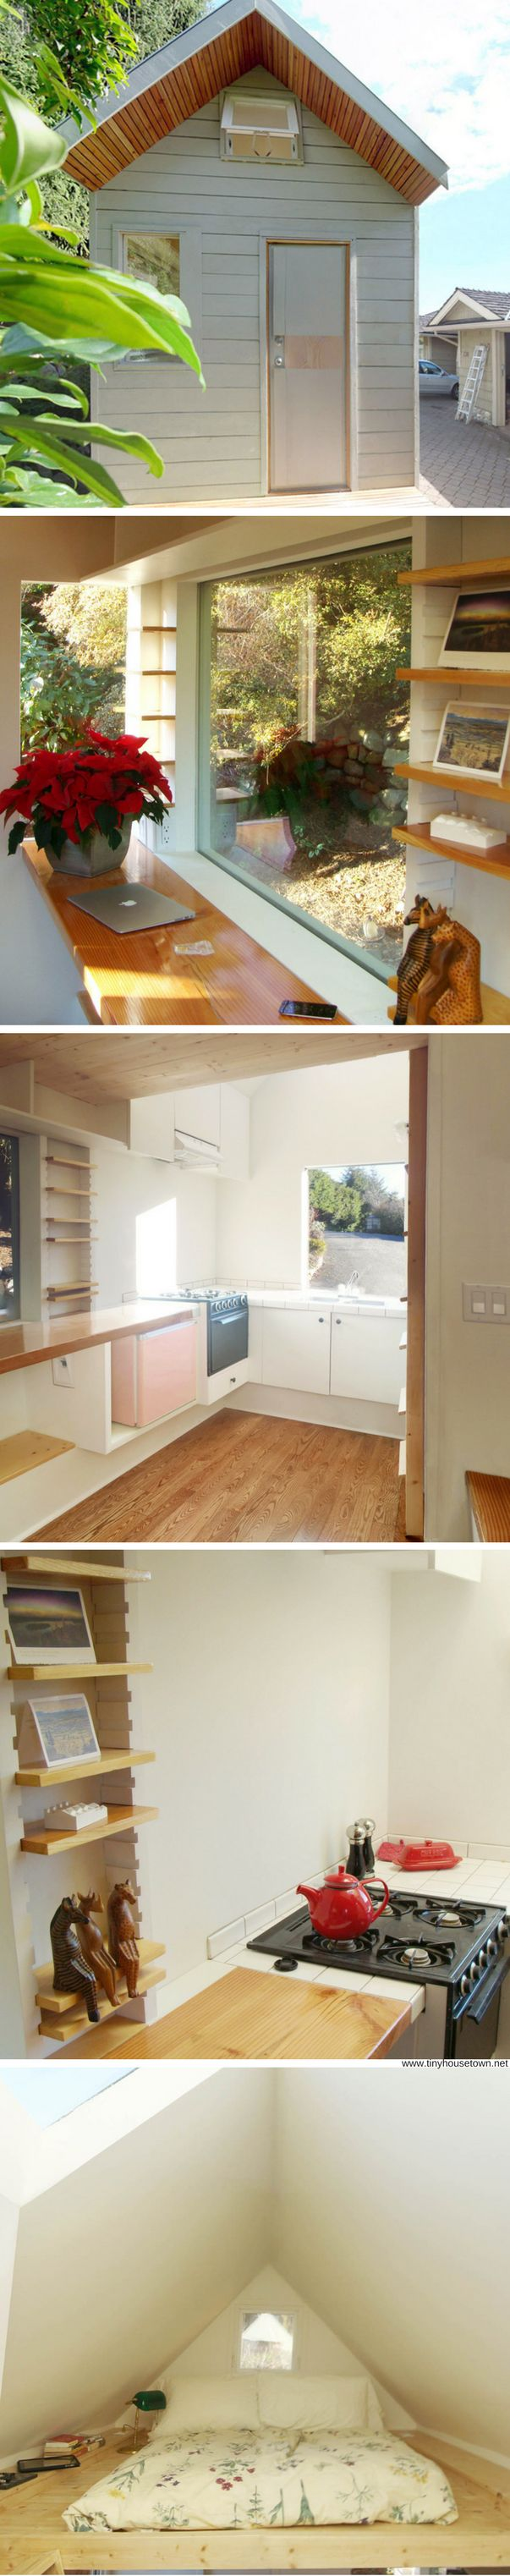 The Lighthouse: a 100 sq ft tiny house made in Canada